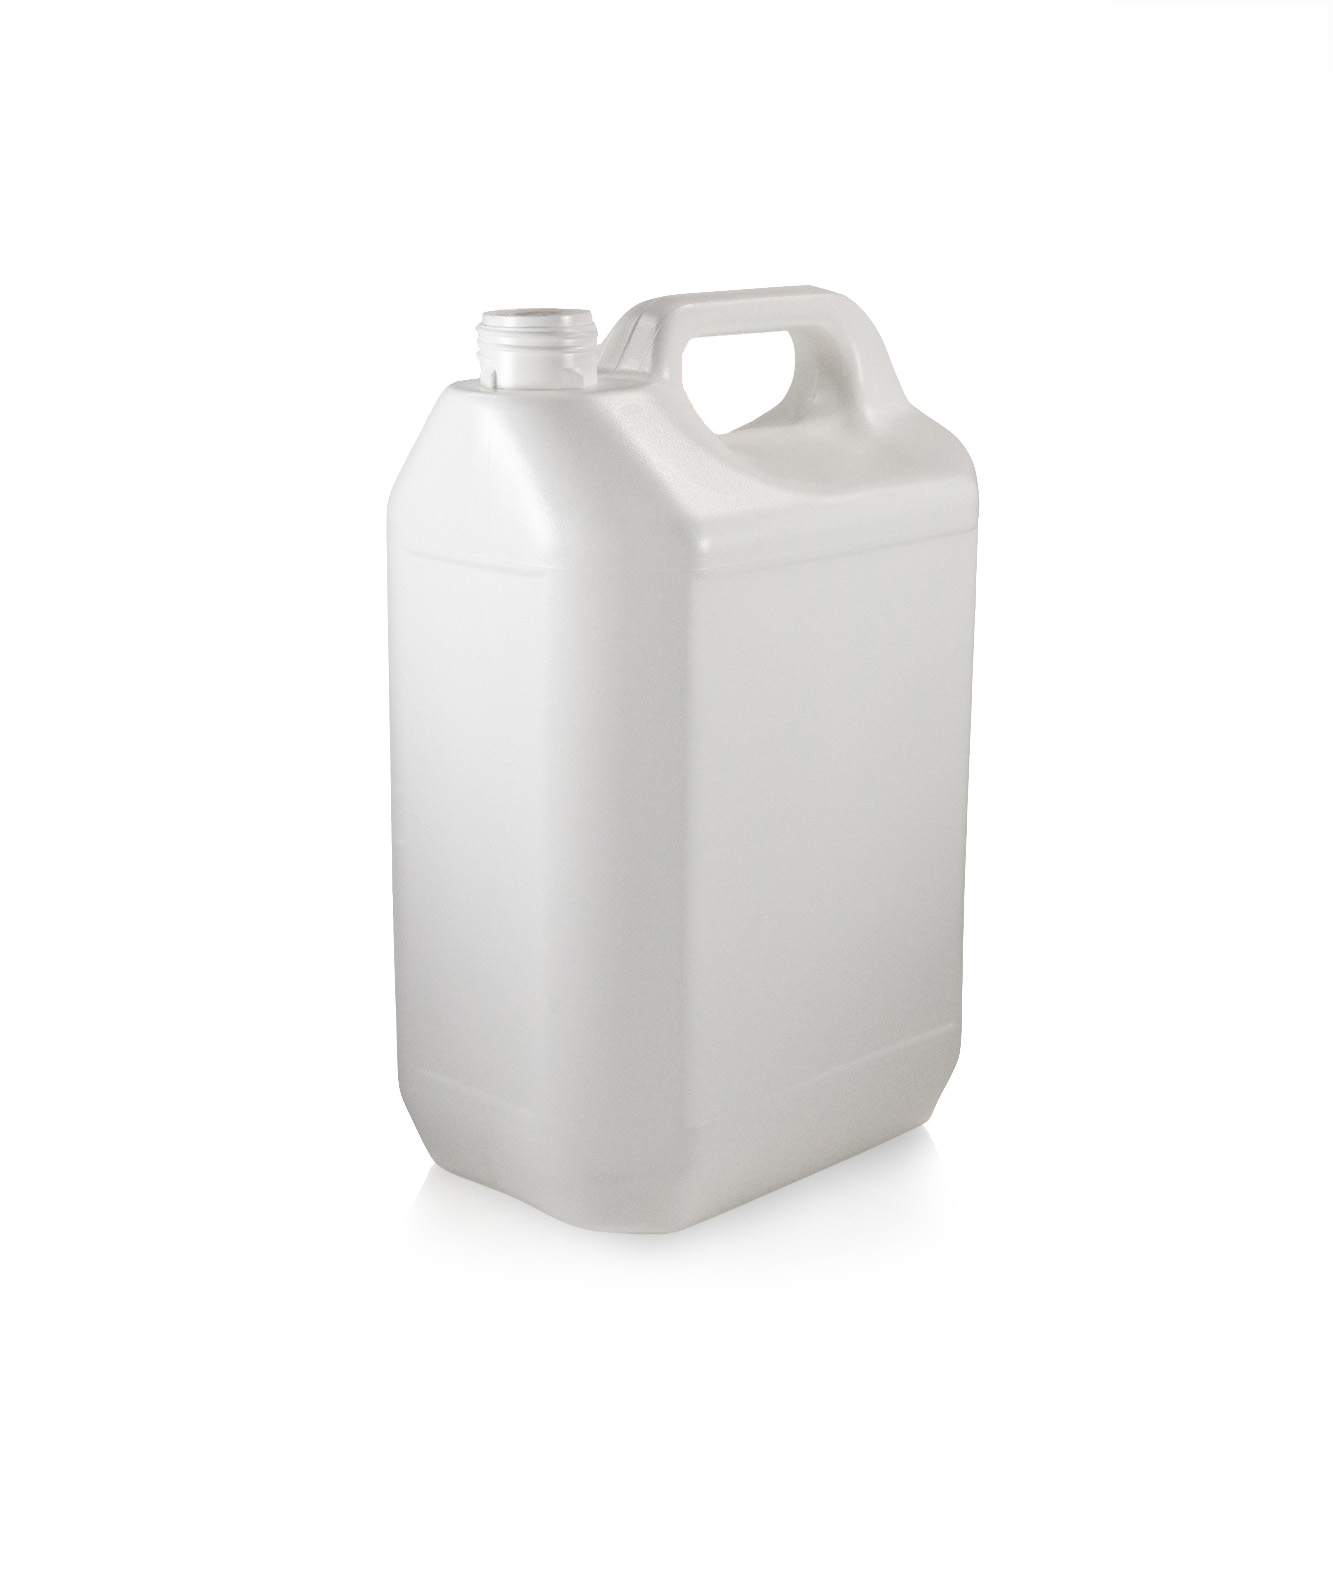 Plastic Jerry Can Manufacturers in UAE and Oman | Jerry Can